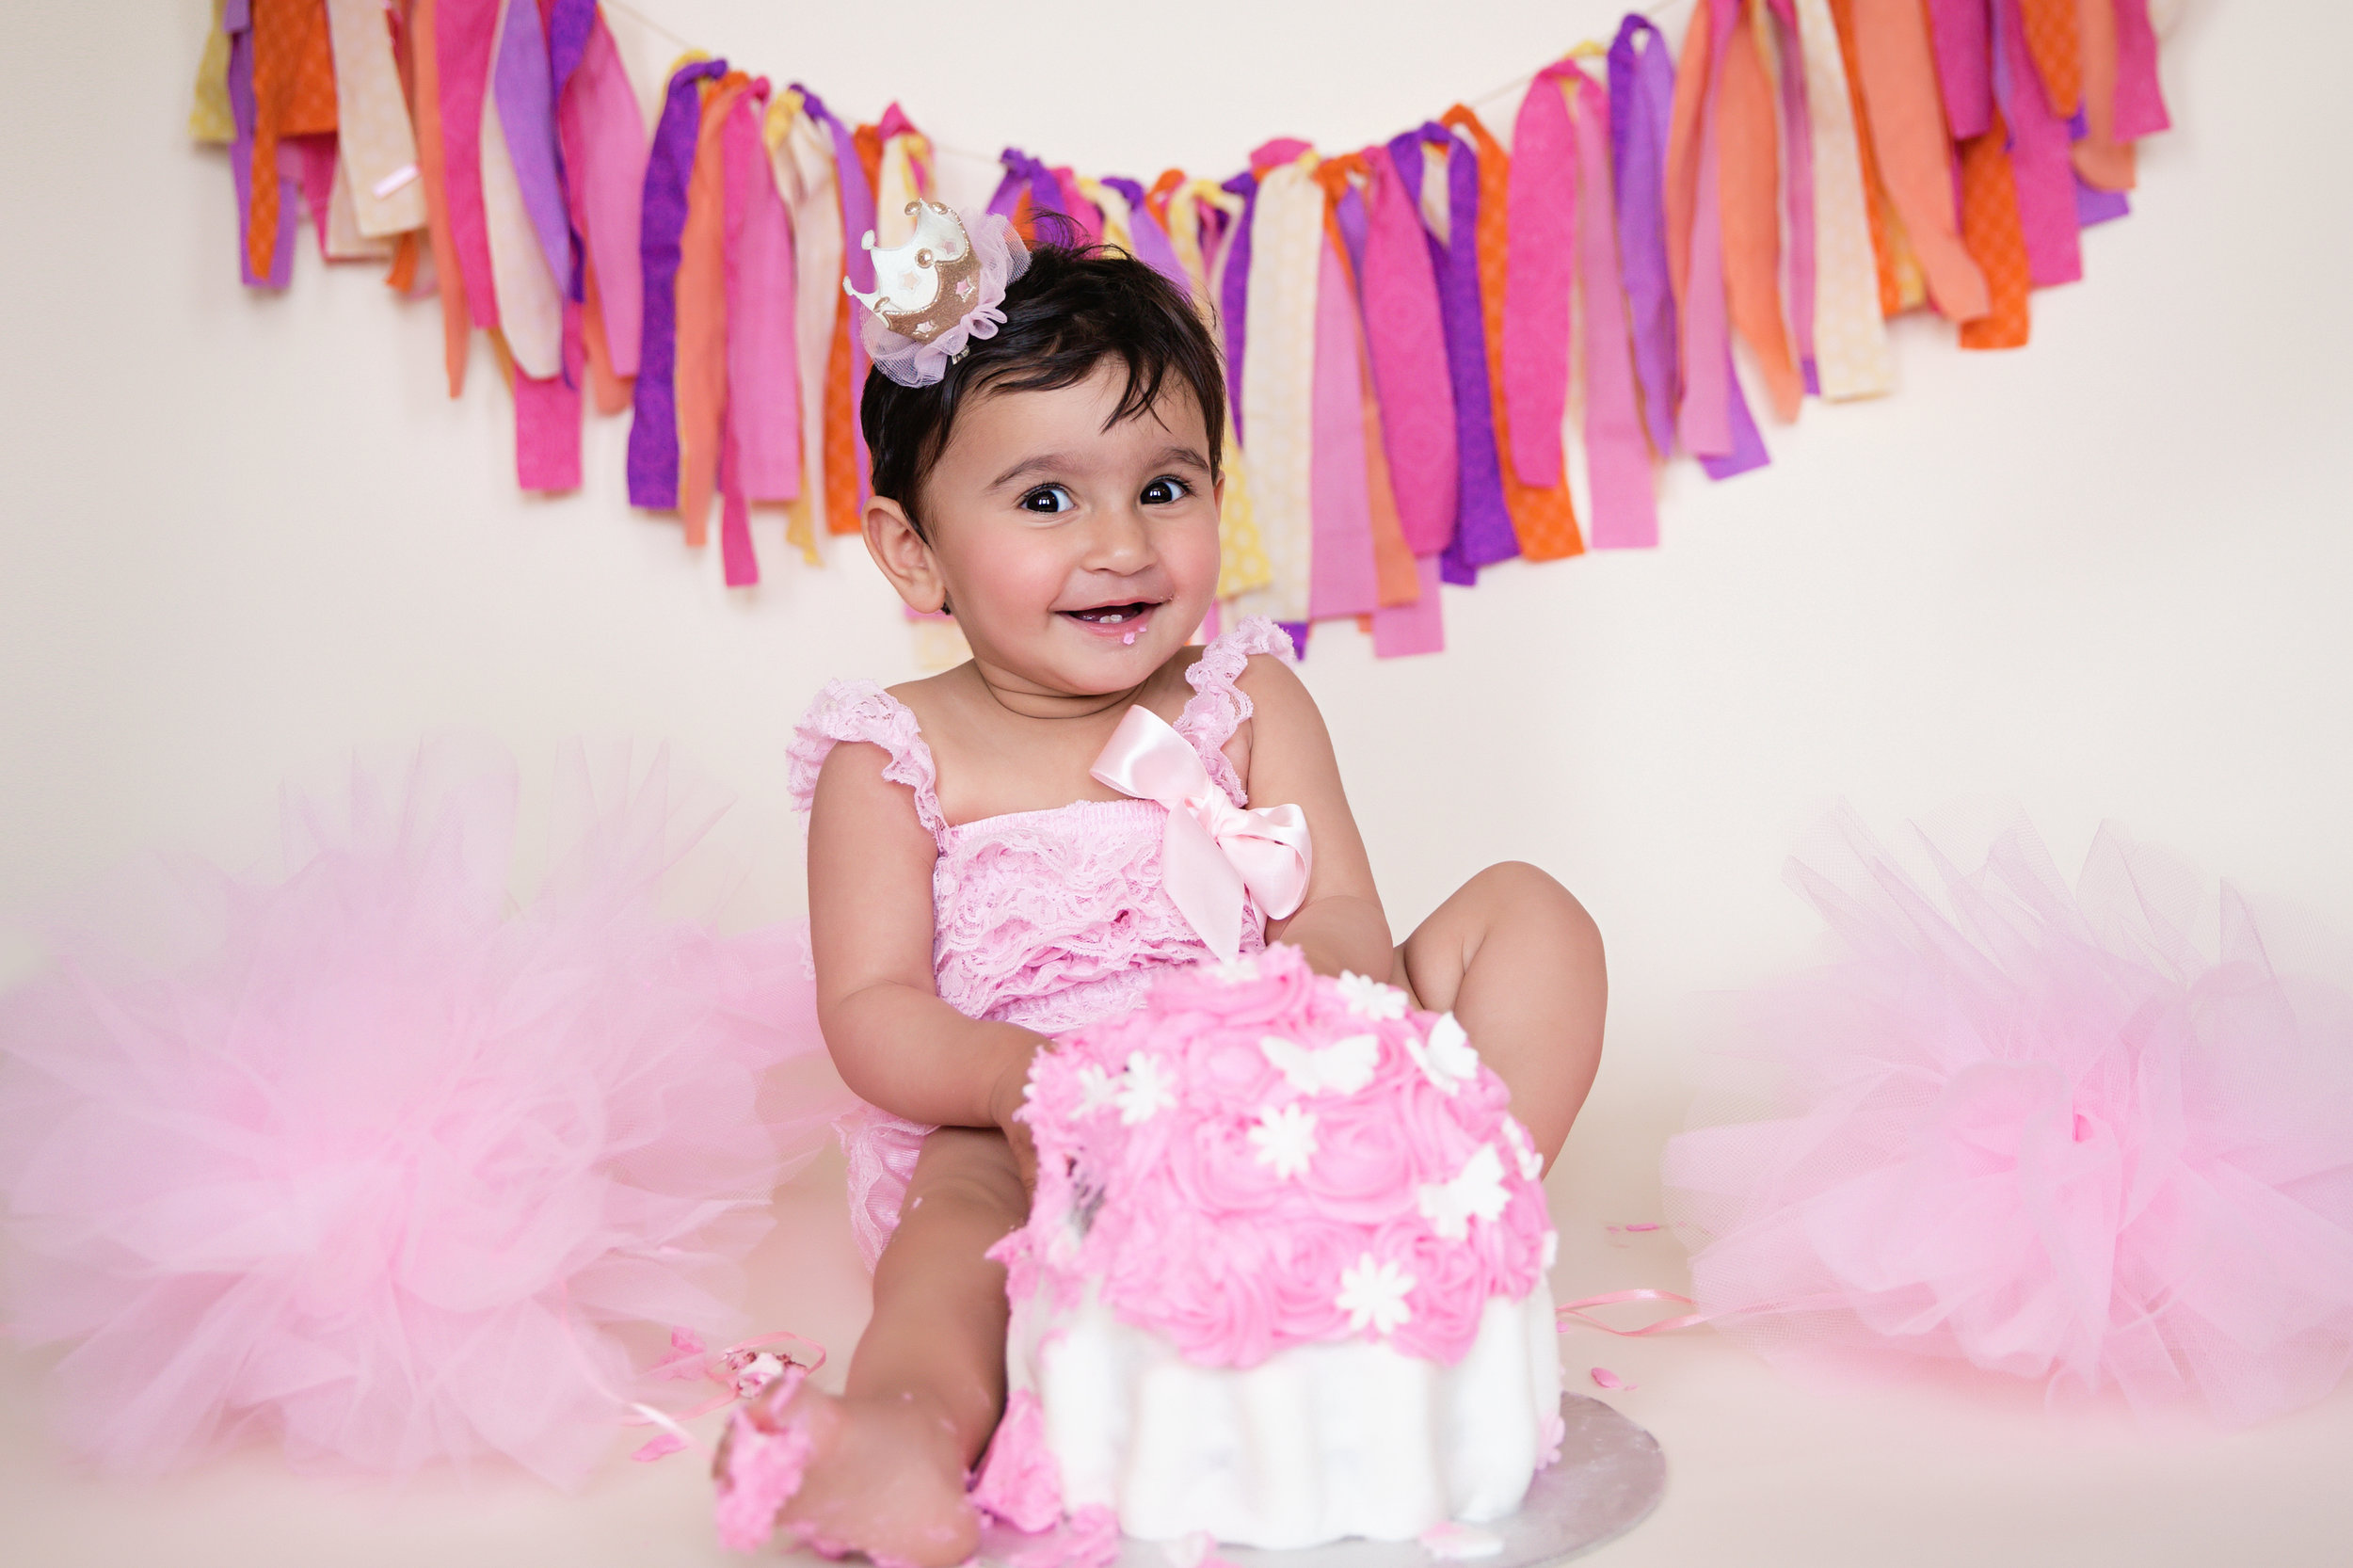 Cakesmash photoshoot. Baby girl wearing a pink romper smashing her cake. Calgary photographer. Milashka Photography